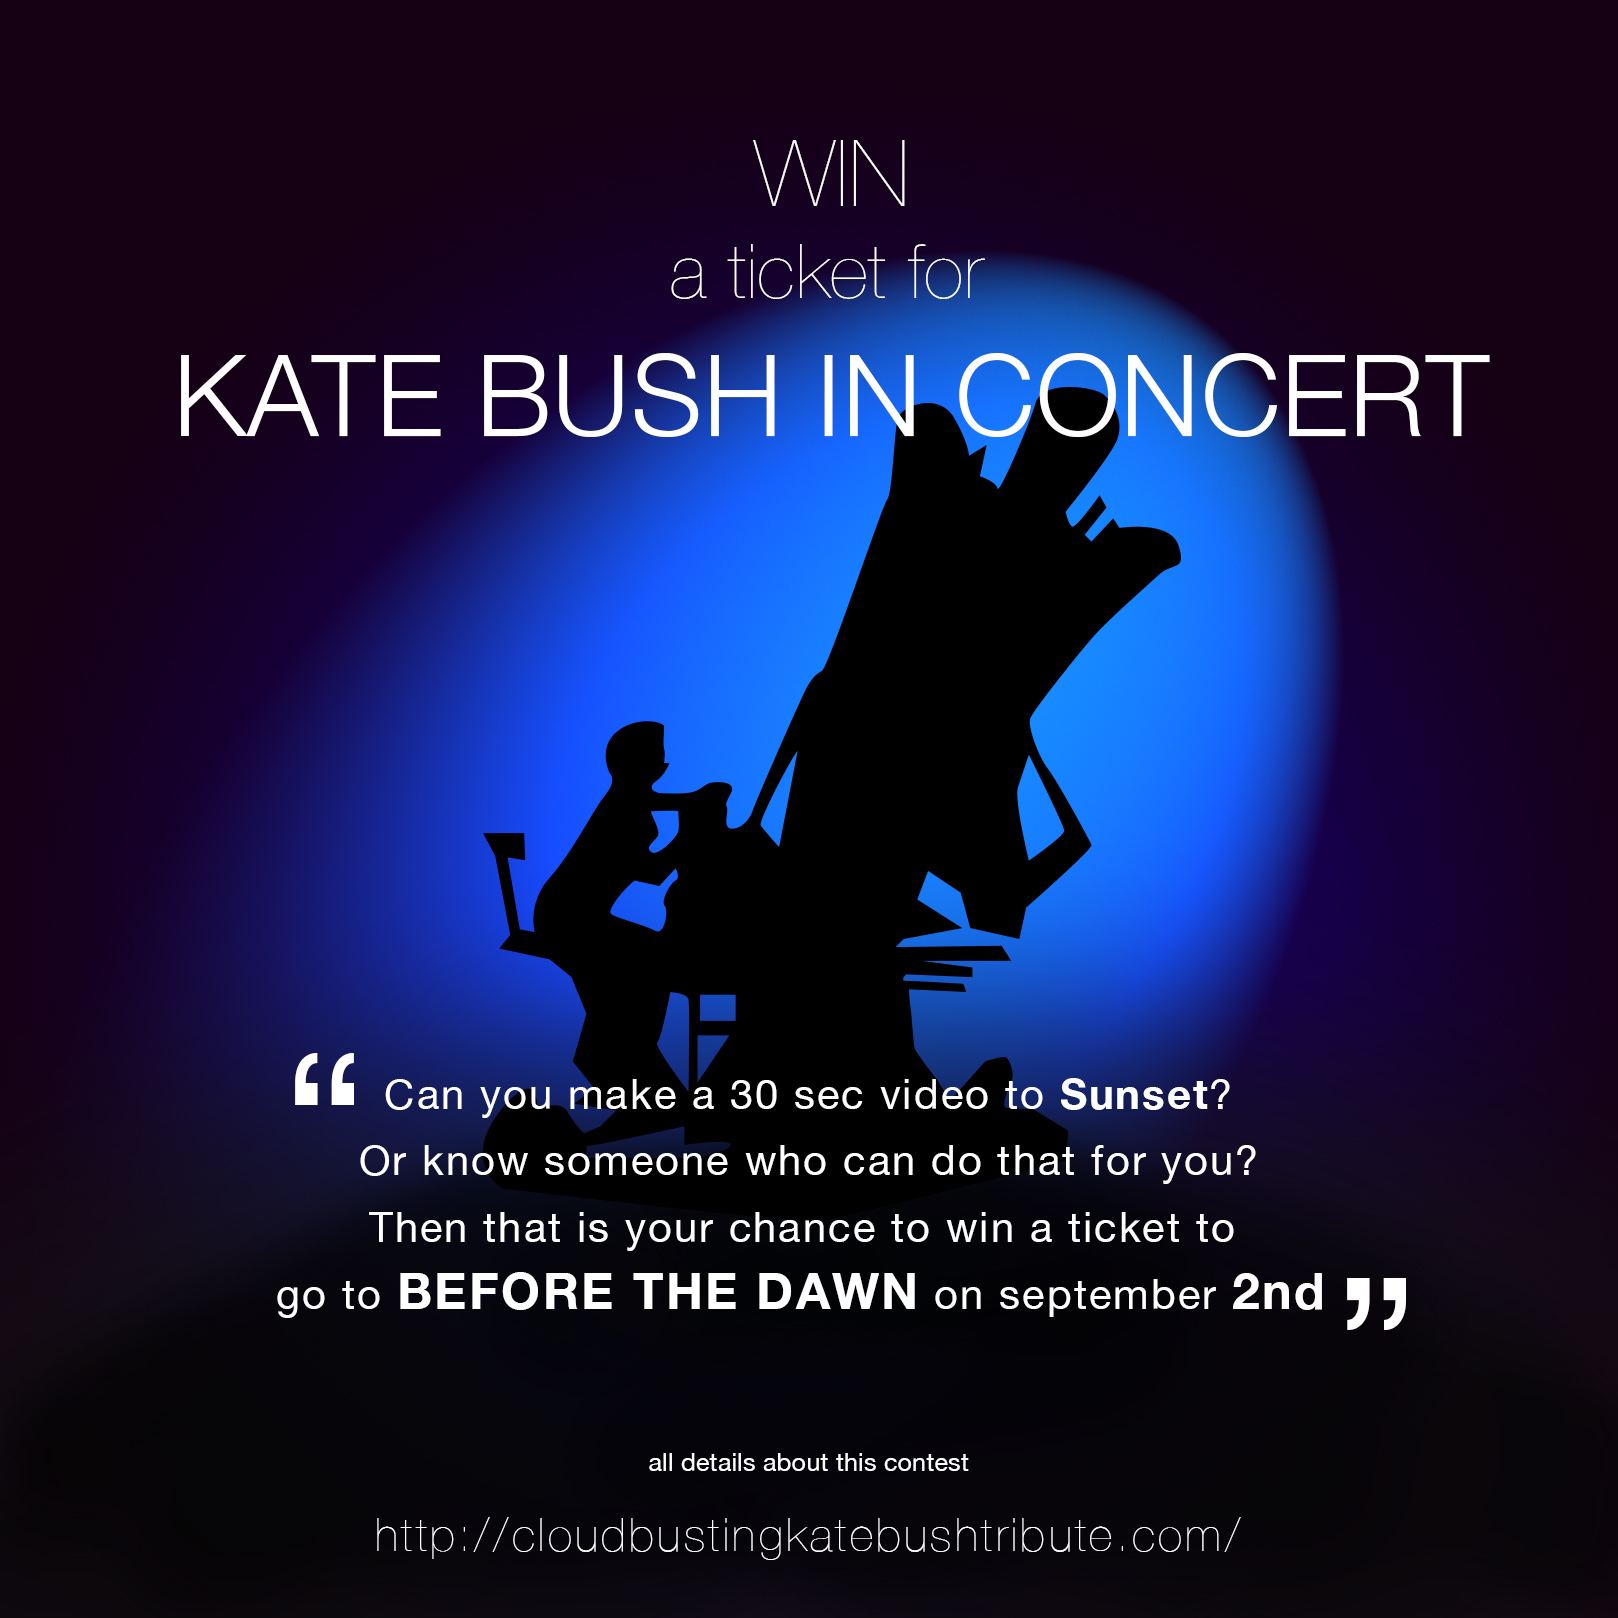 Cloudbusting Contest - win a ticket to see Kate Bush